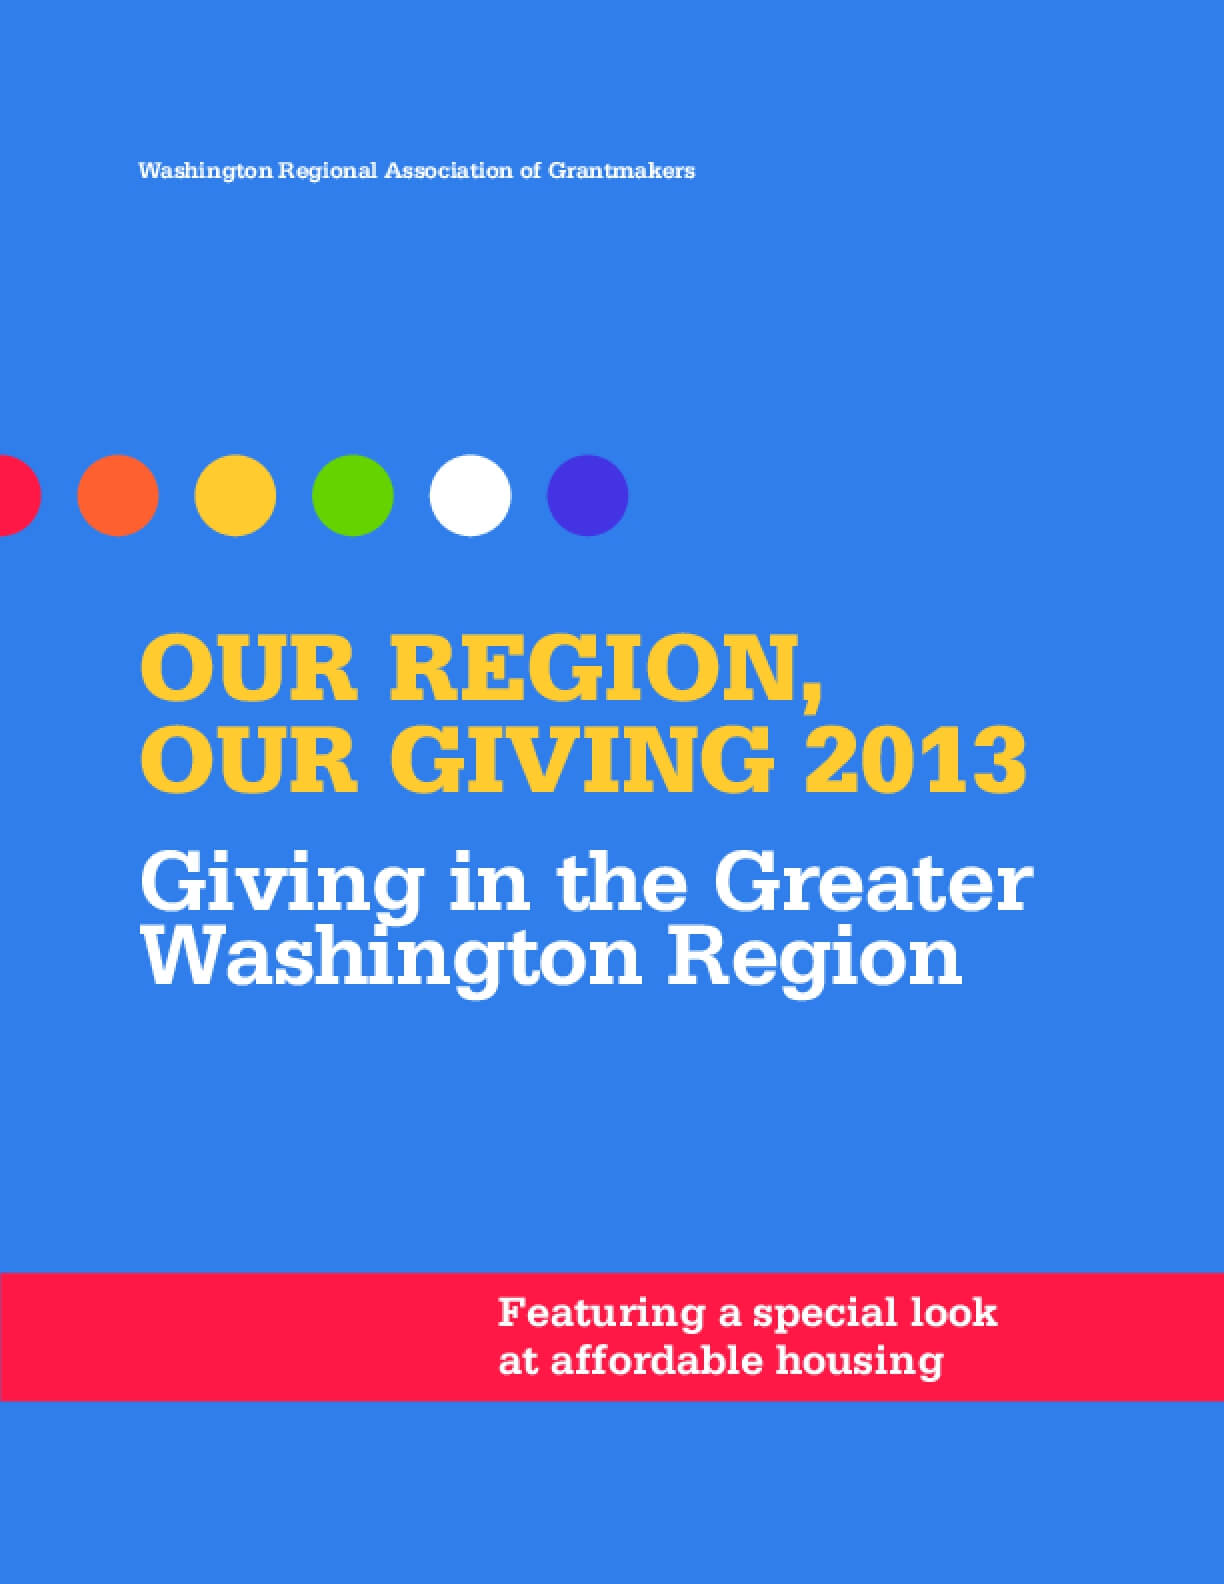 Our Region, Our Giving 2013: Philanthropy in the Greater Washington Region